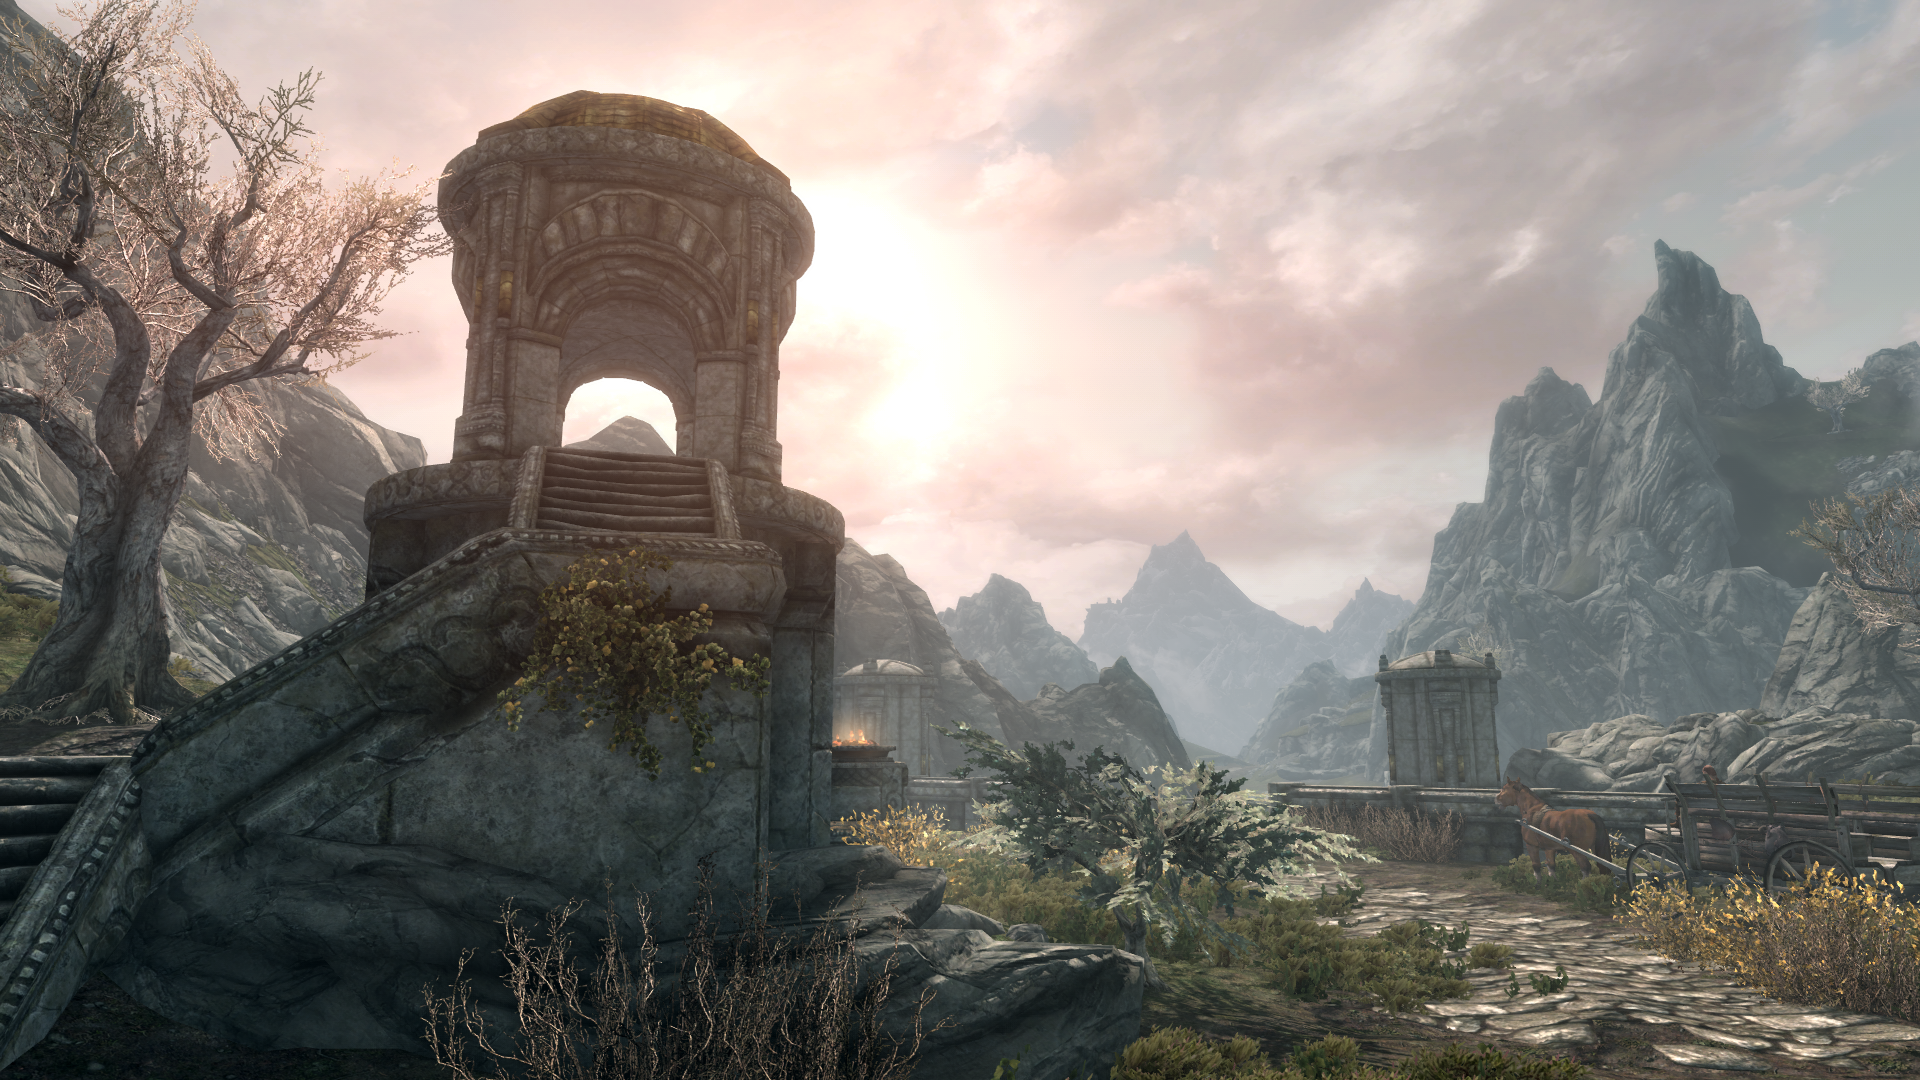 Skyrim Special Edition settings, comparison shots, and performance